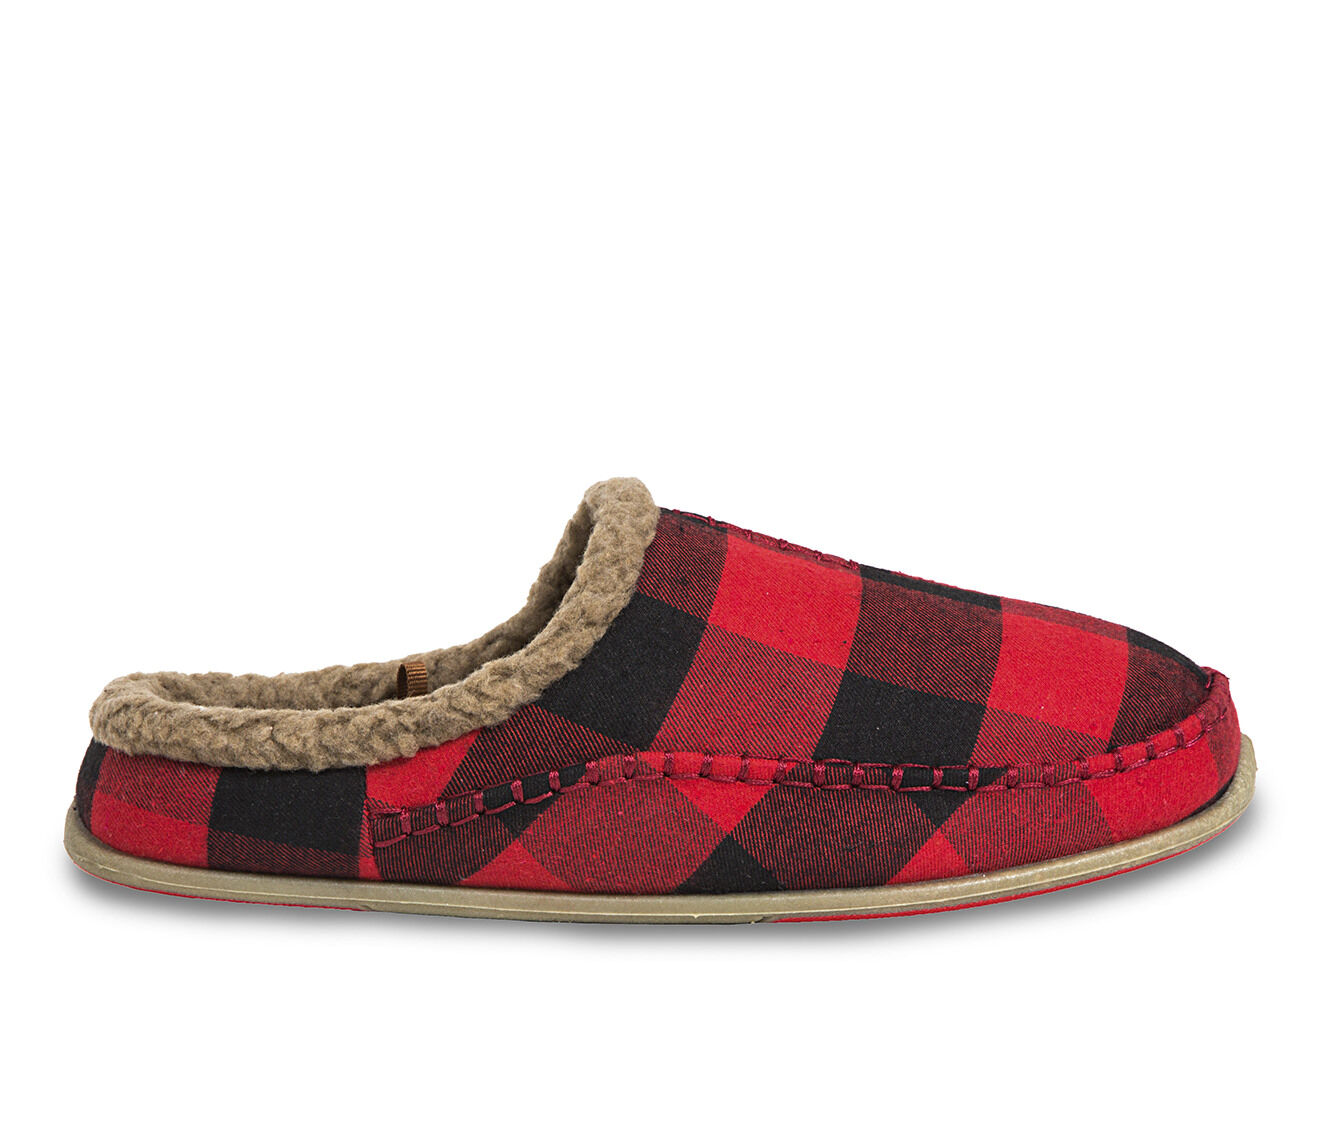 Deer Stags Nordic Slippers Red/Blk Plaid